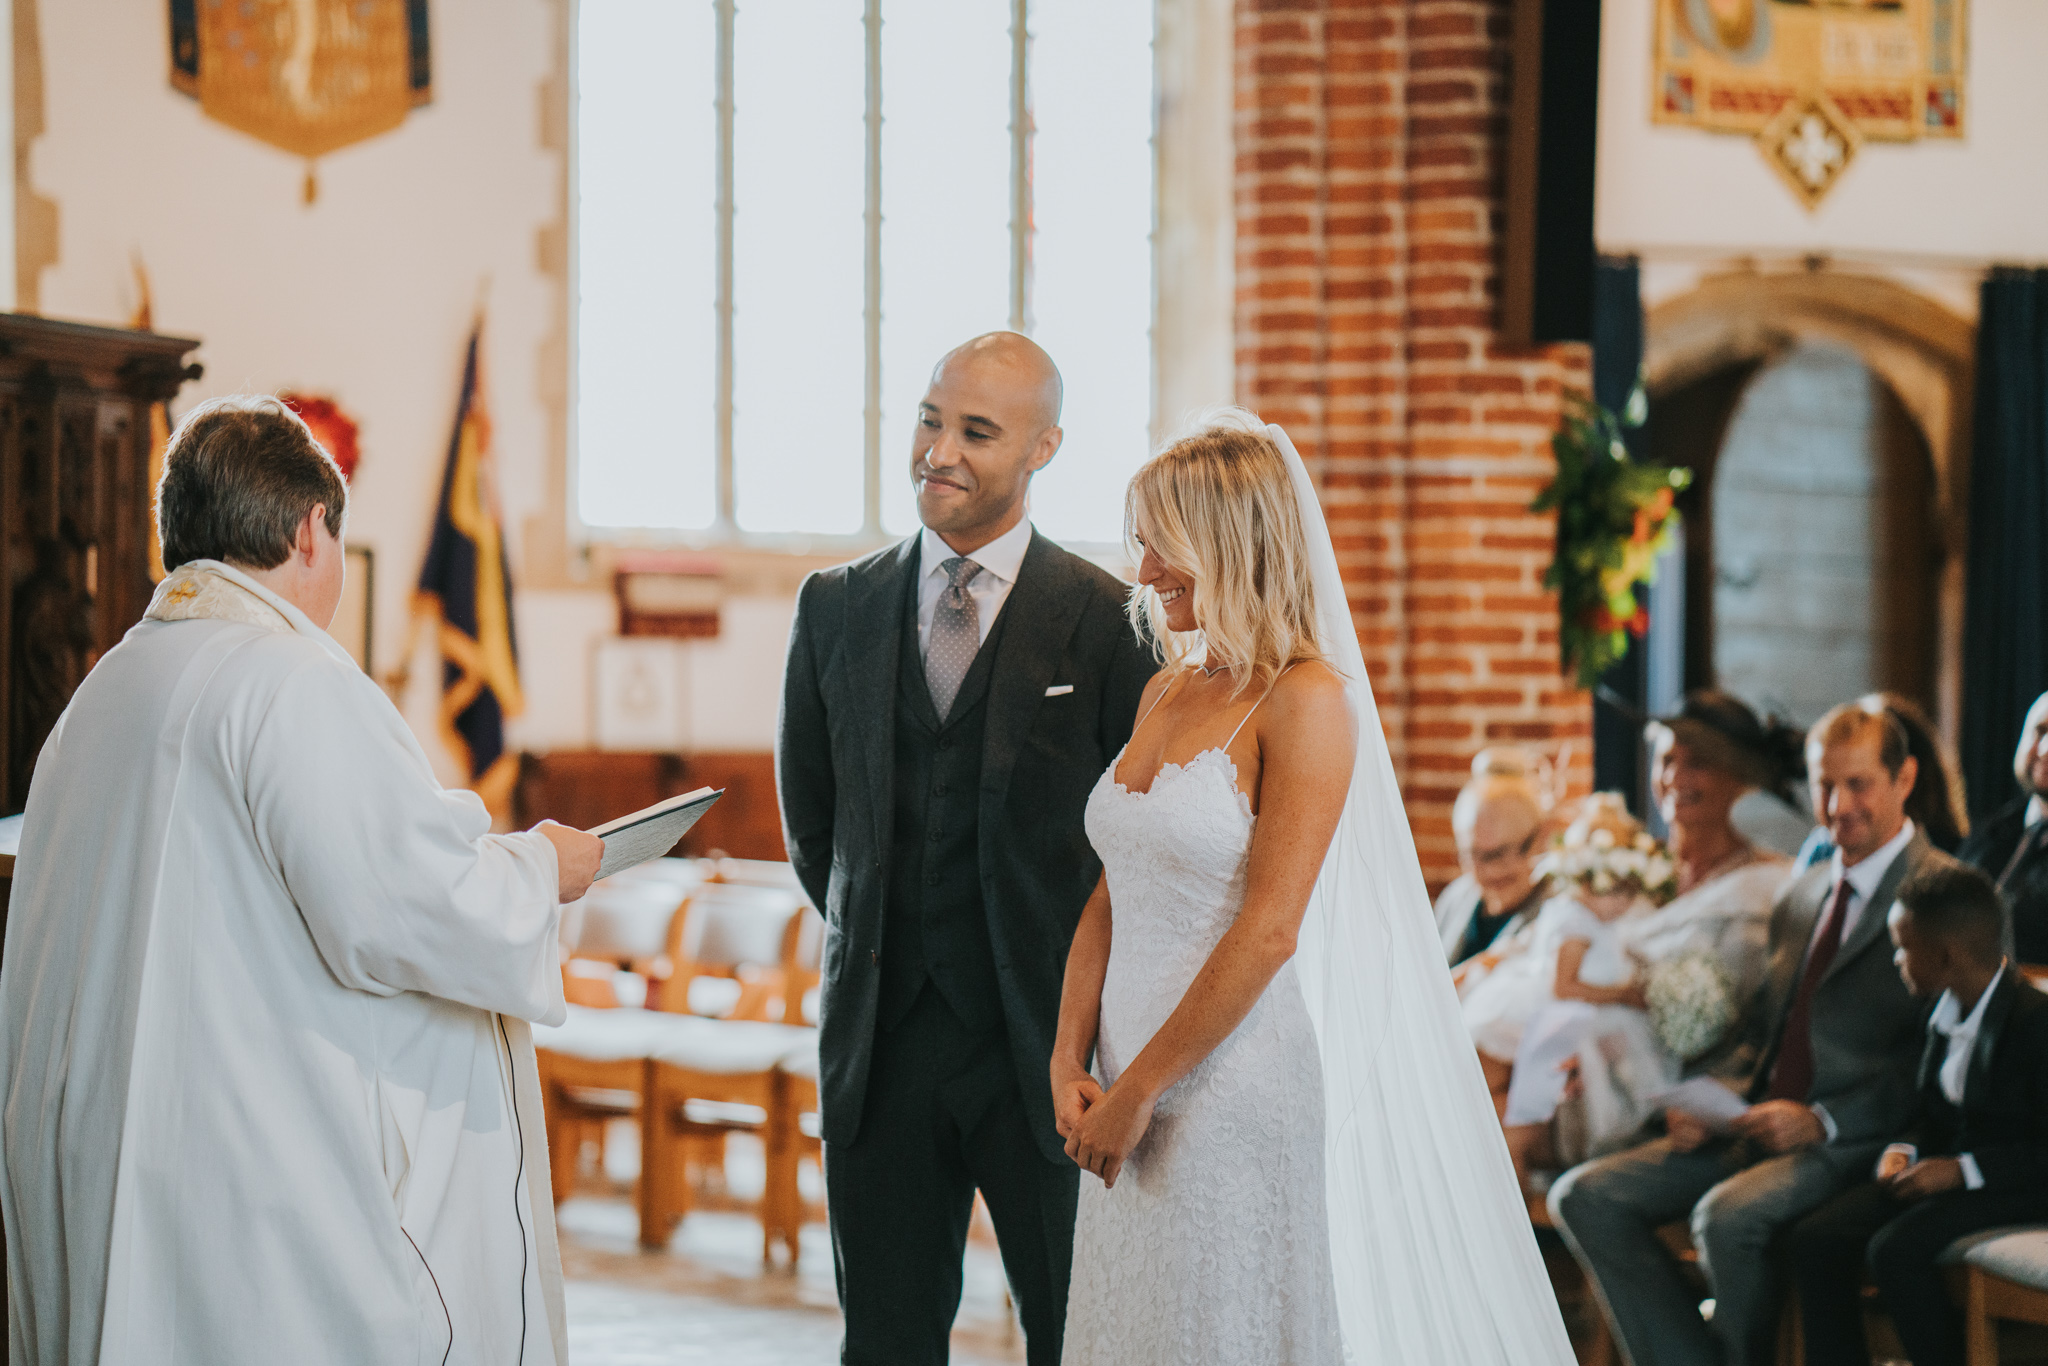 intimate-english-church-wedding-sarah-alex-colchester-essex-grace-elizabeth-colchester-essex-alternative-wedding-lifestyle-photographer-essex-suffolk-norfolk-devon (36 of 92).jpg